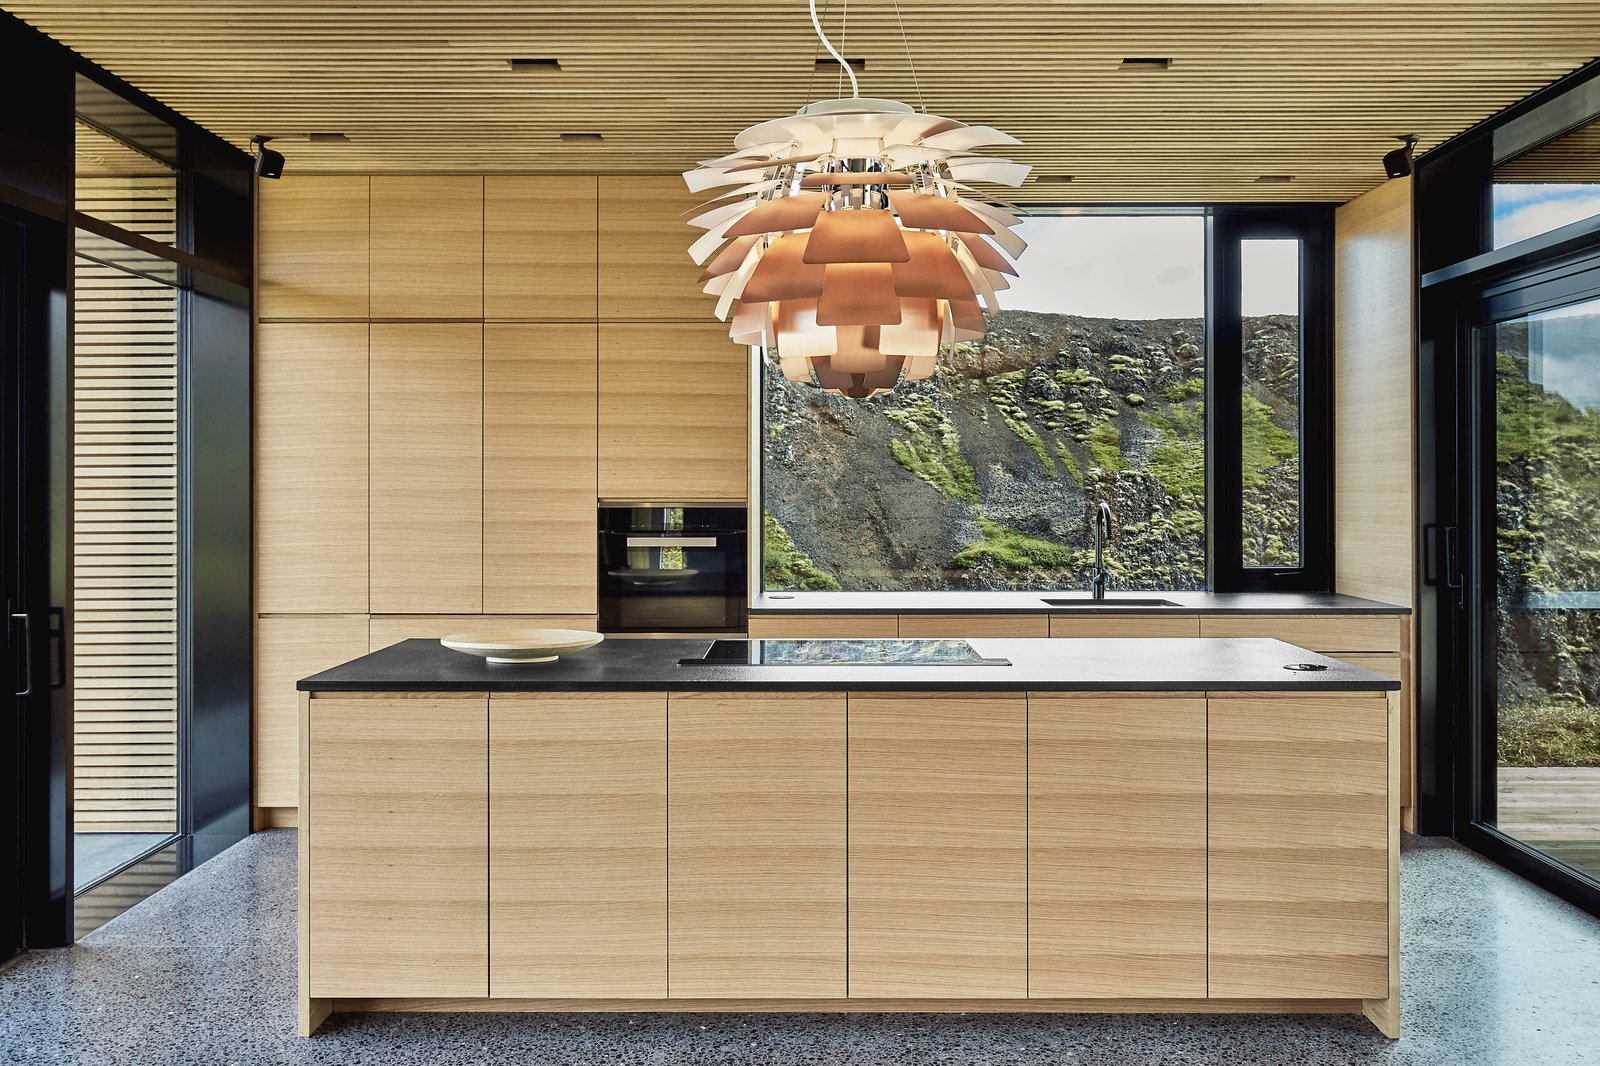 Kitchen, Wall Oven, Wood, Cooktops, Concrete, Pendant, Recessed, and Drop In The open kitchen blends in with sleek, wood cabinetry and black countertops.  Best Kitchen Cooktops Recessed Wall Oven Wood Concrete Photos from A Timber-and-Concrete Summer House in Iceland Boasts Breathtaking Views